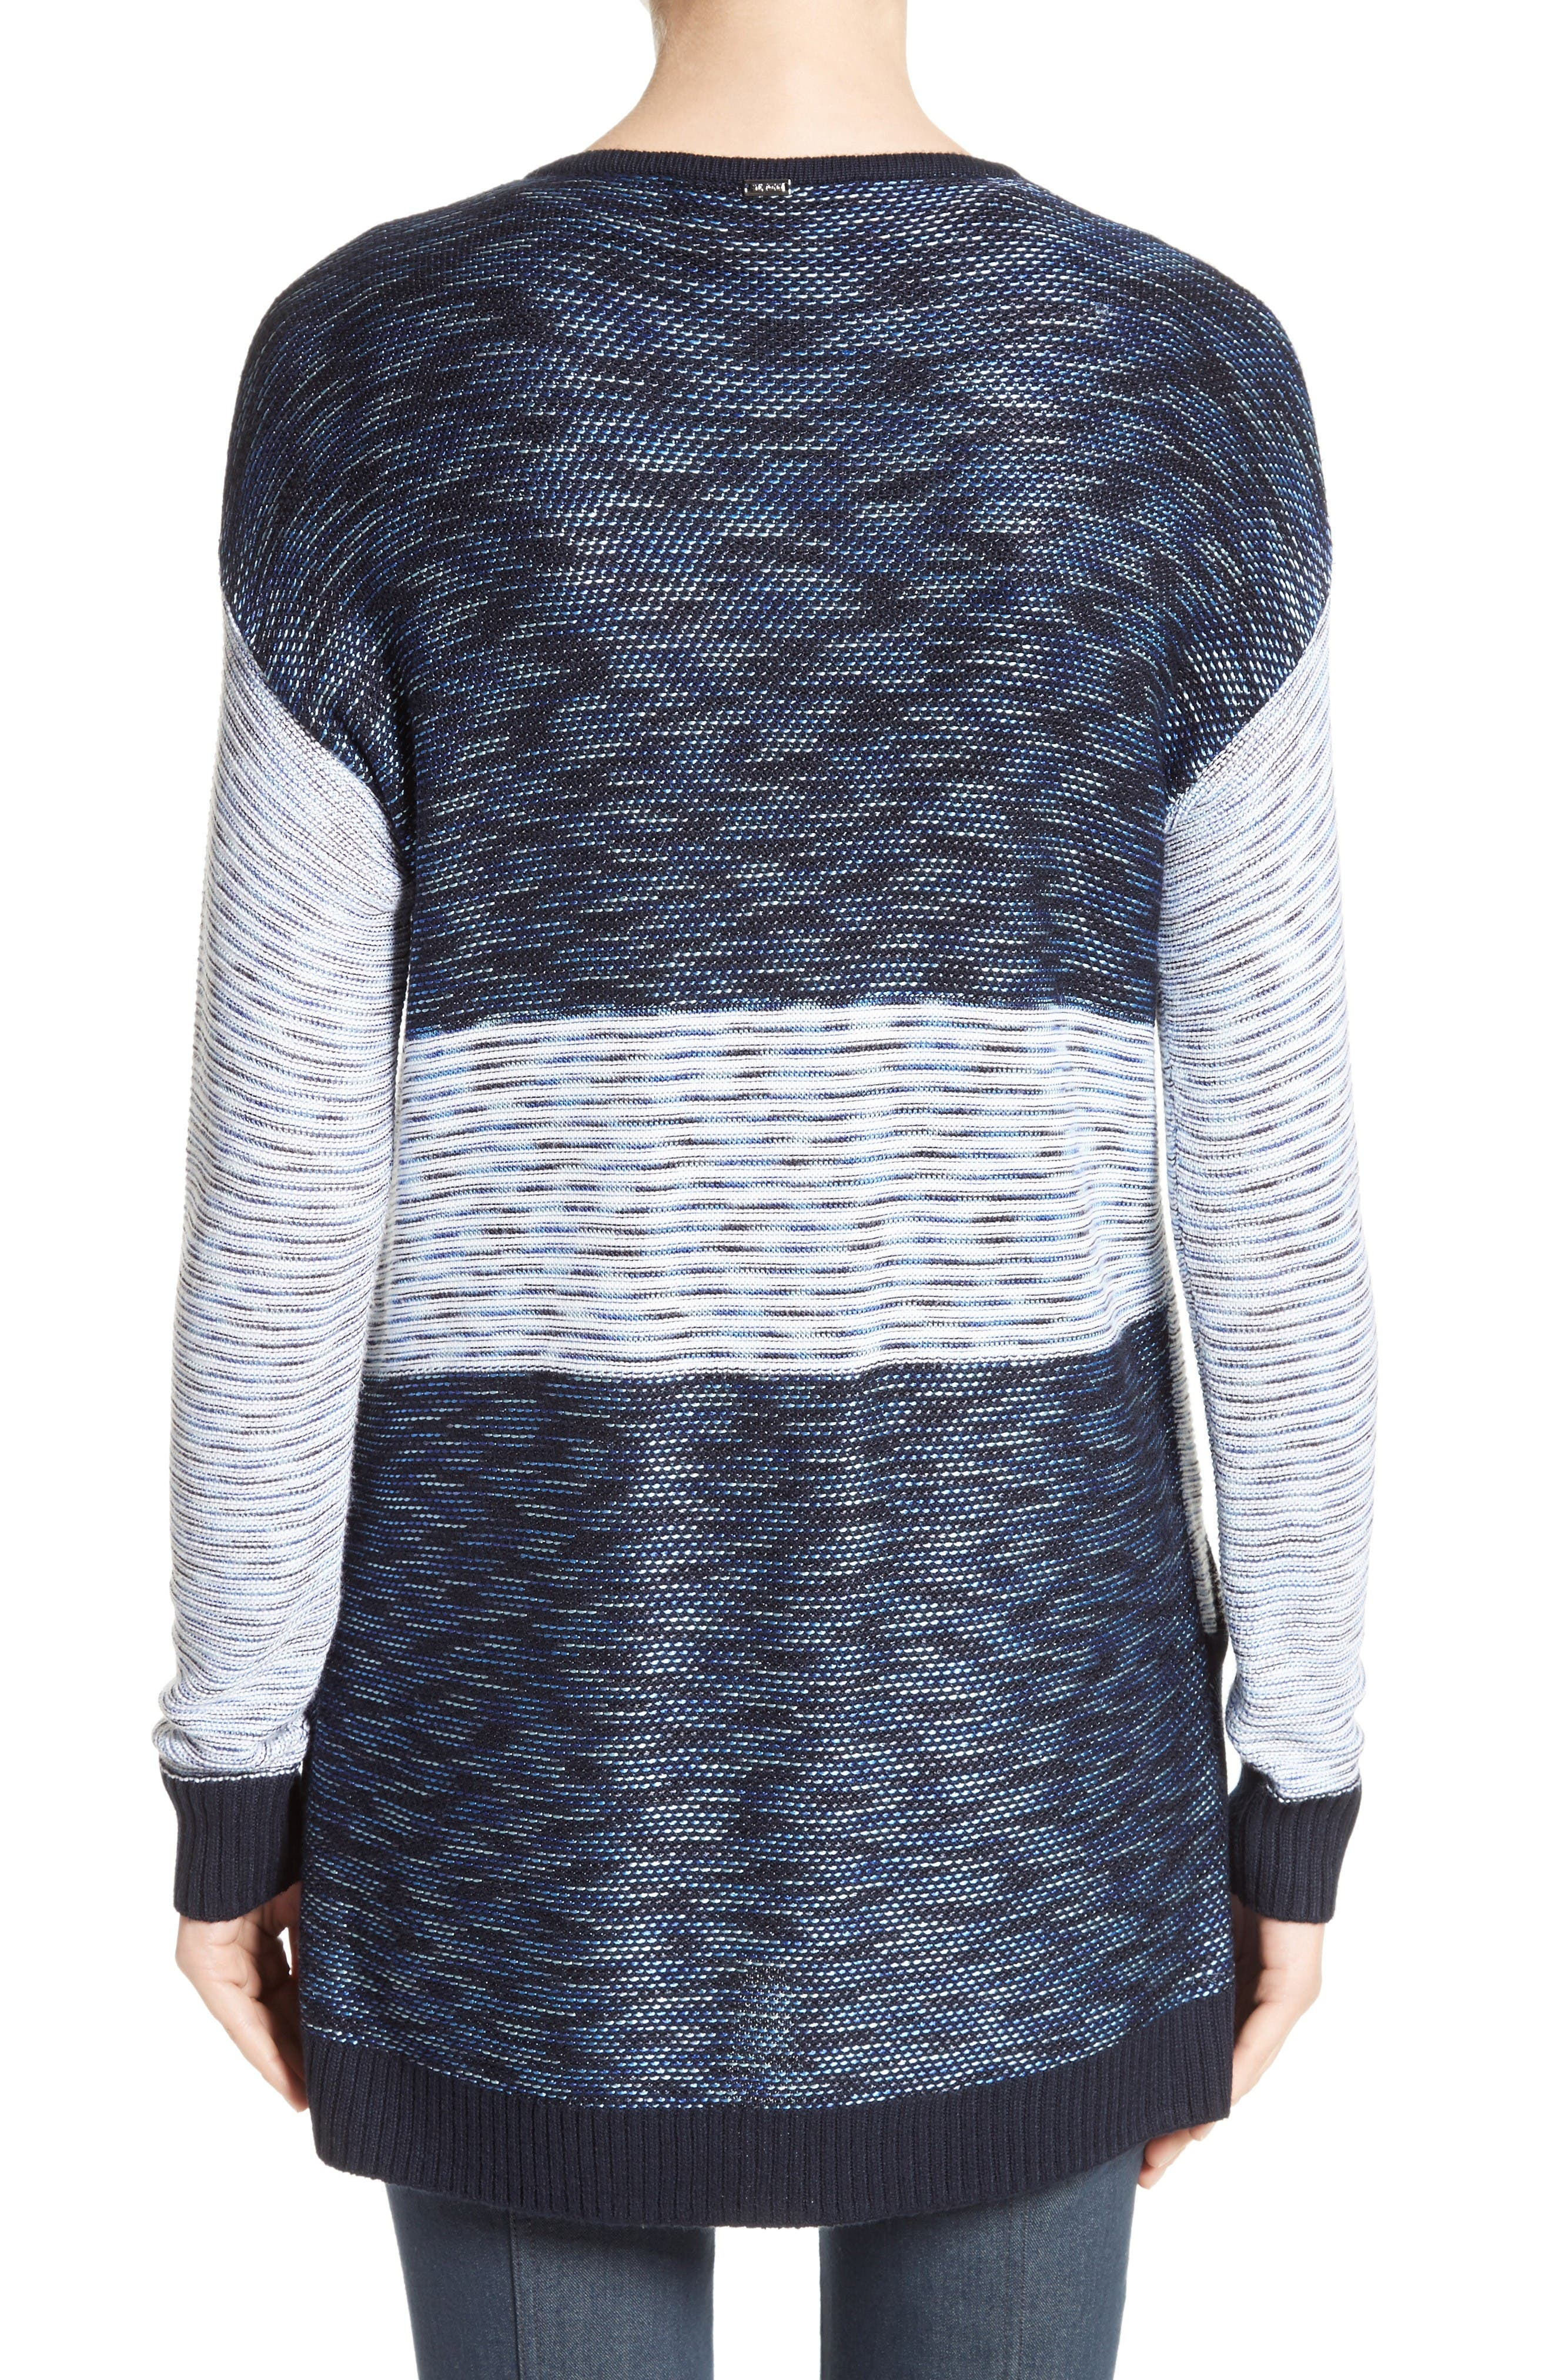 Chambray Effect Links Knit Cardigan,                             Alternate thumbnail 2, color,                             Bianco/ Navy Multi